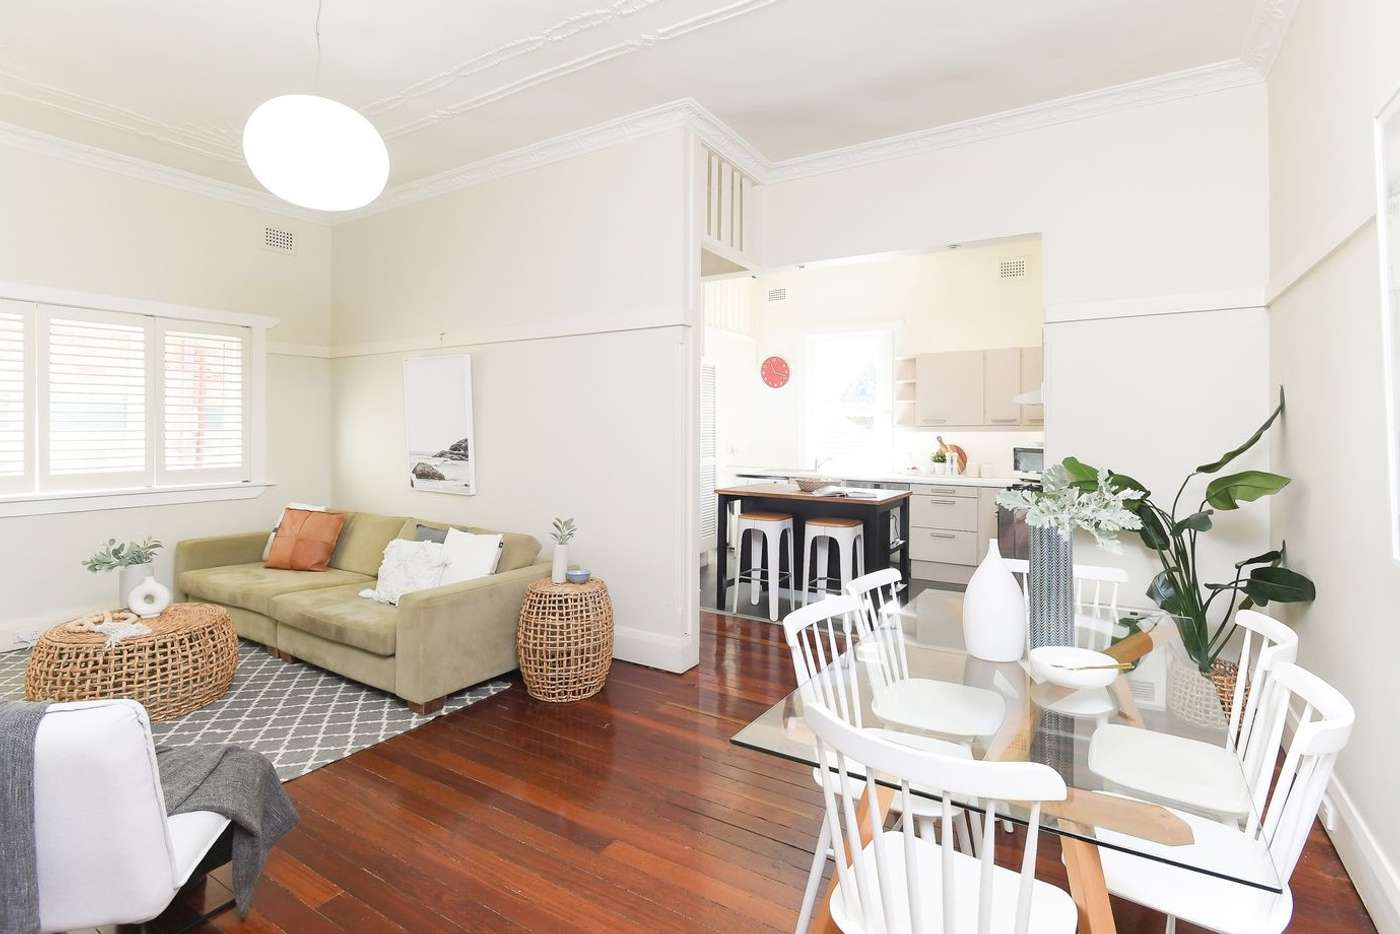 Main view of Homely apartment listing, 3/21 Beach Road, Bondi Beach NSW 2026